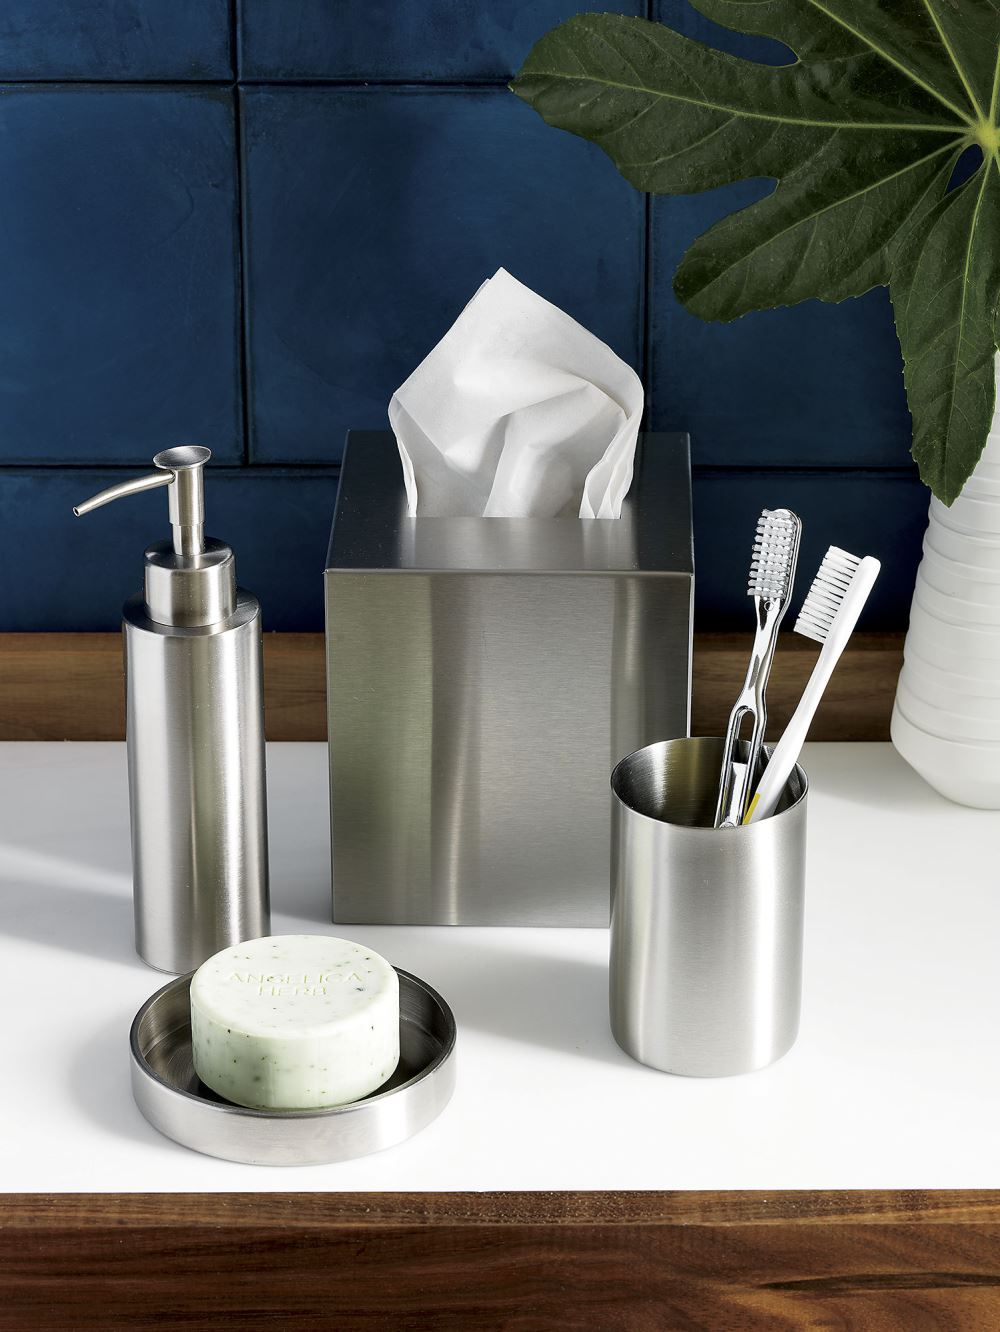 Stainless steel bath accessories from CB2